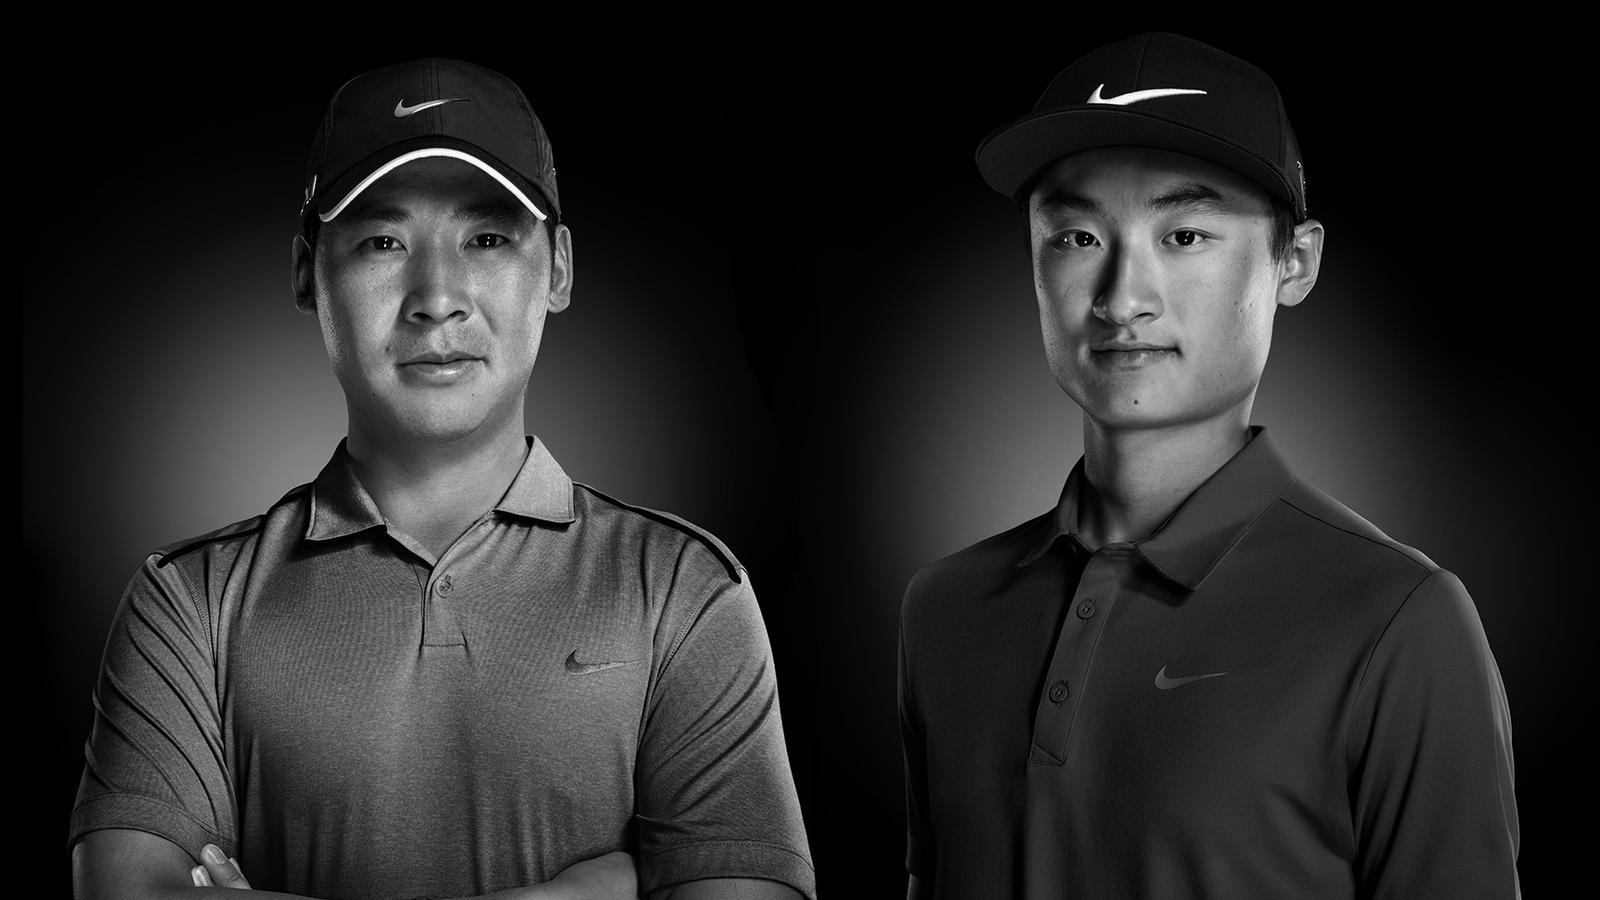 New Nike Athletes Zhang and Li